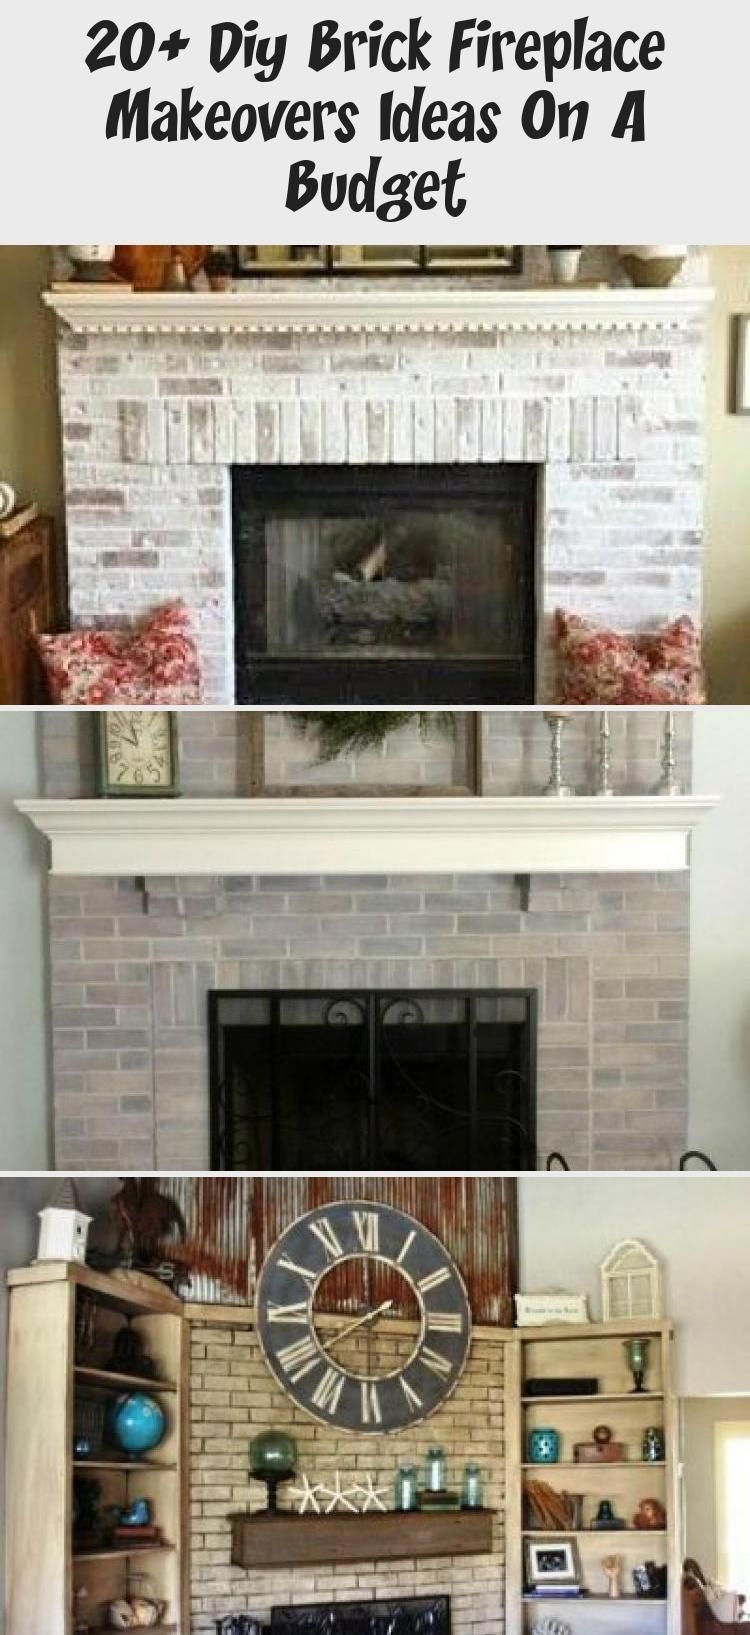 20 diy brick fireplace makeovers ideas on a budget